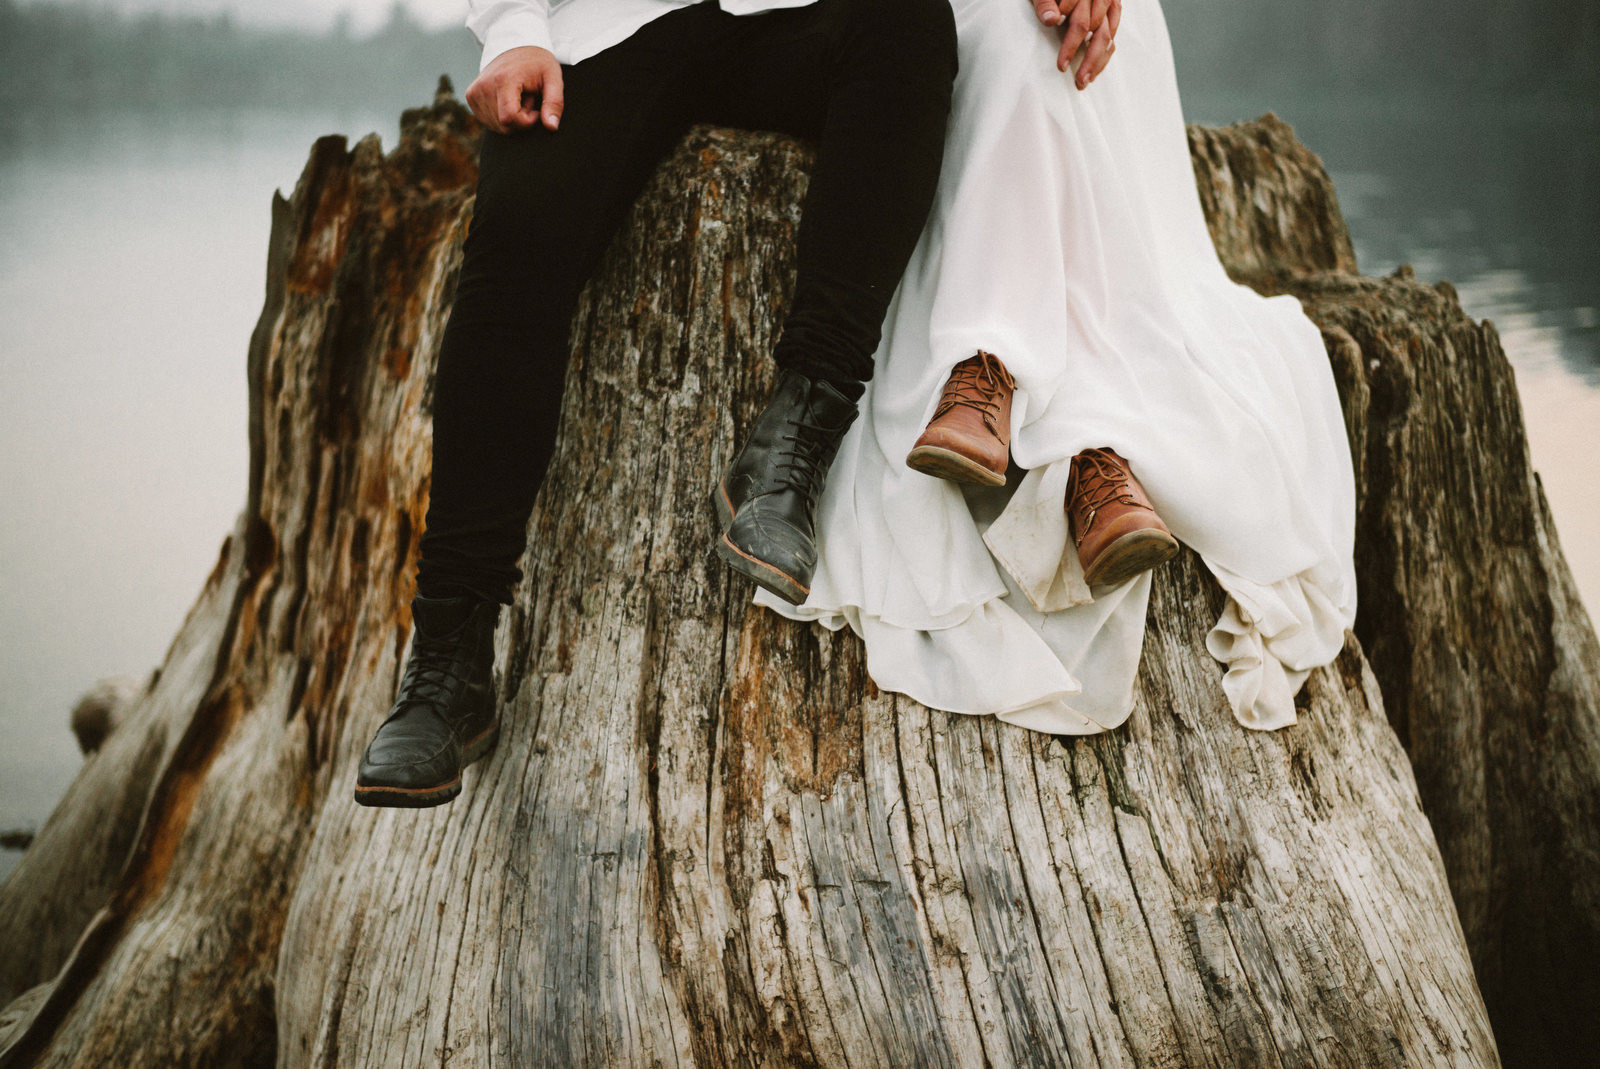 athena-and-camron-seattle-elopement-wedding-benj-haisch-rattlesnake-lake-christian-couple-goals88